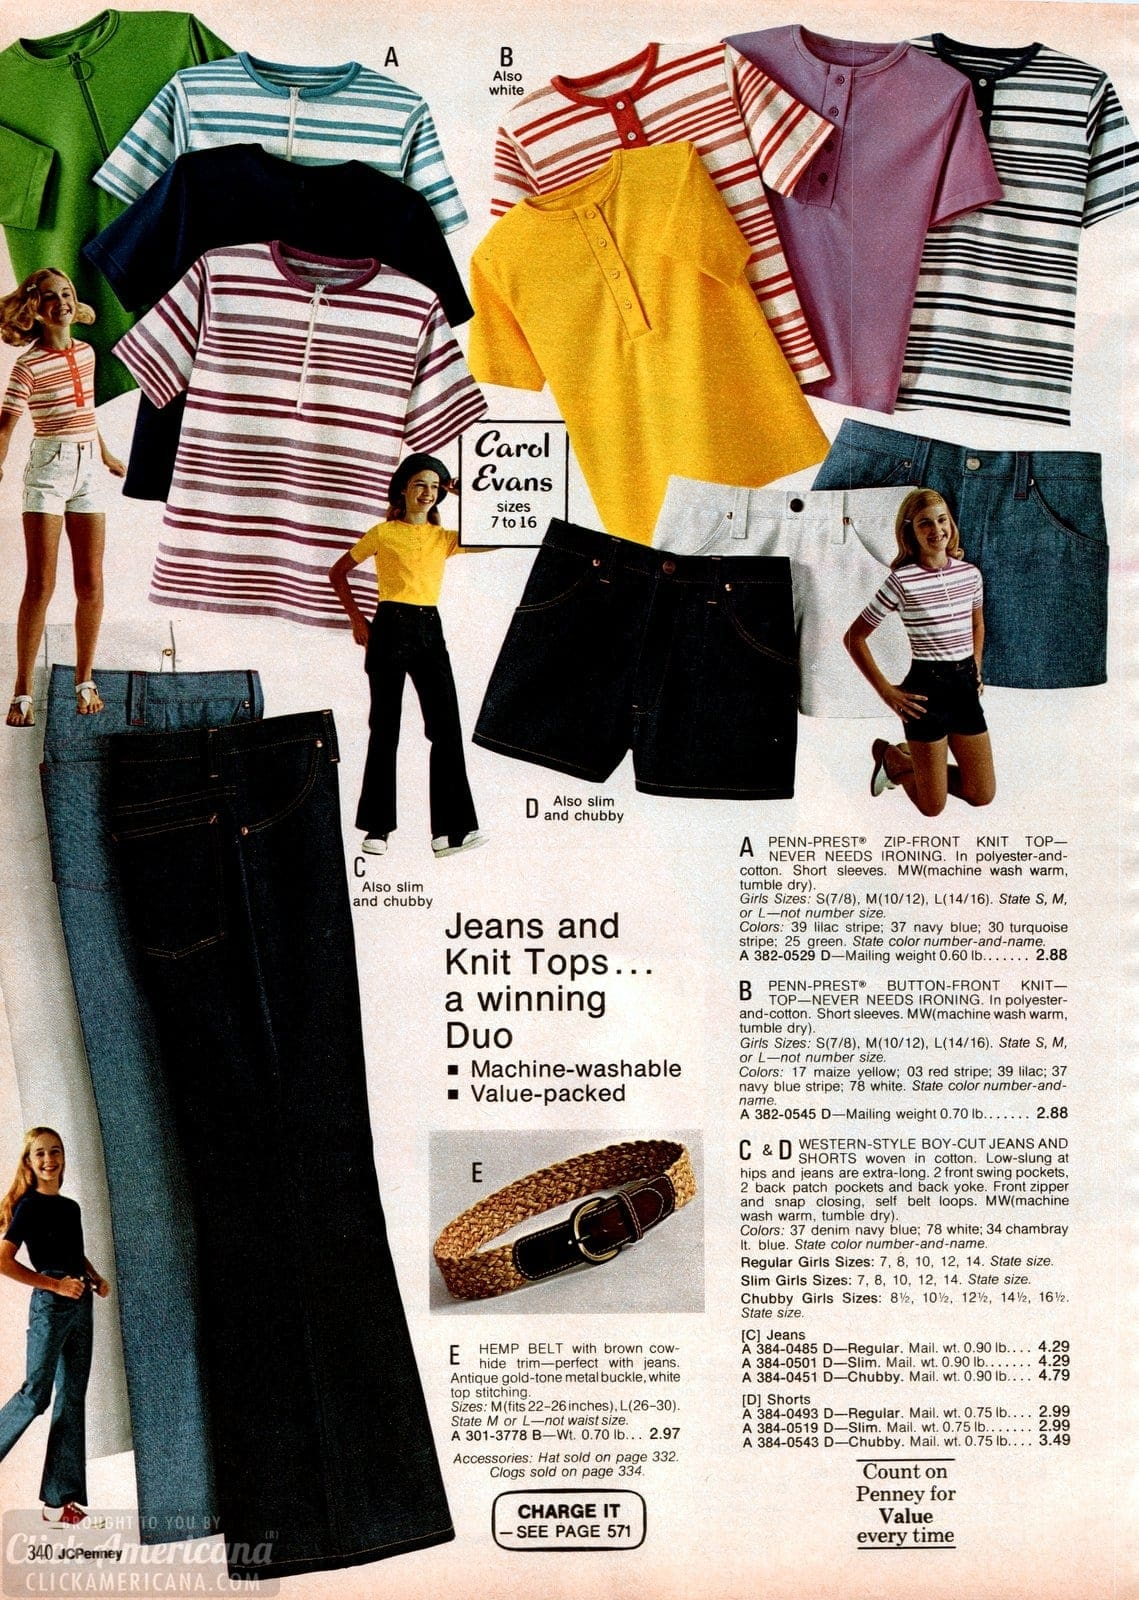 Retro striped and solid tops for girls and western style jeans from the 70s